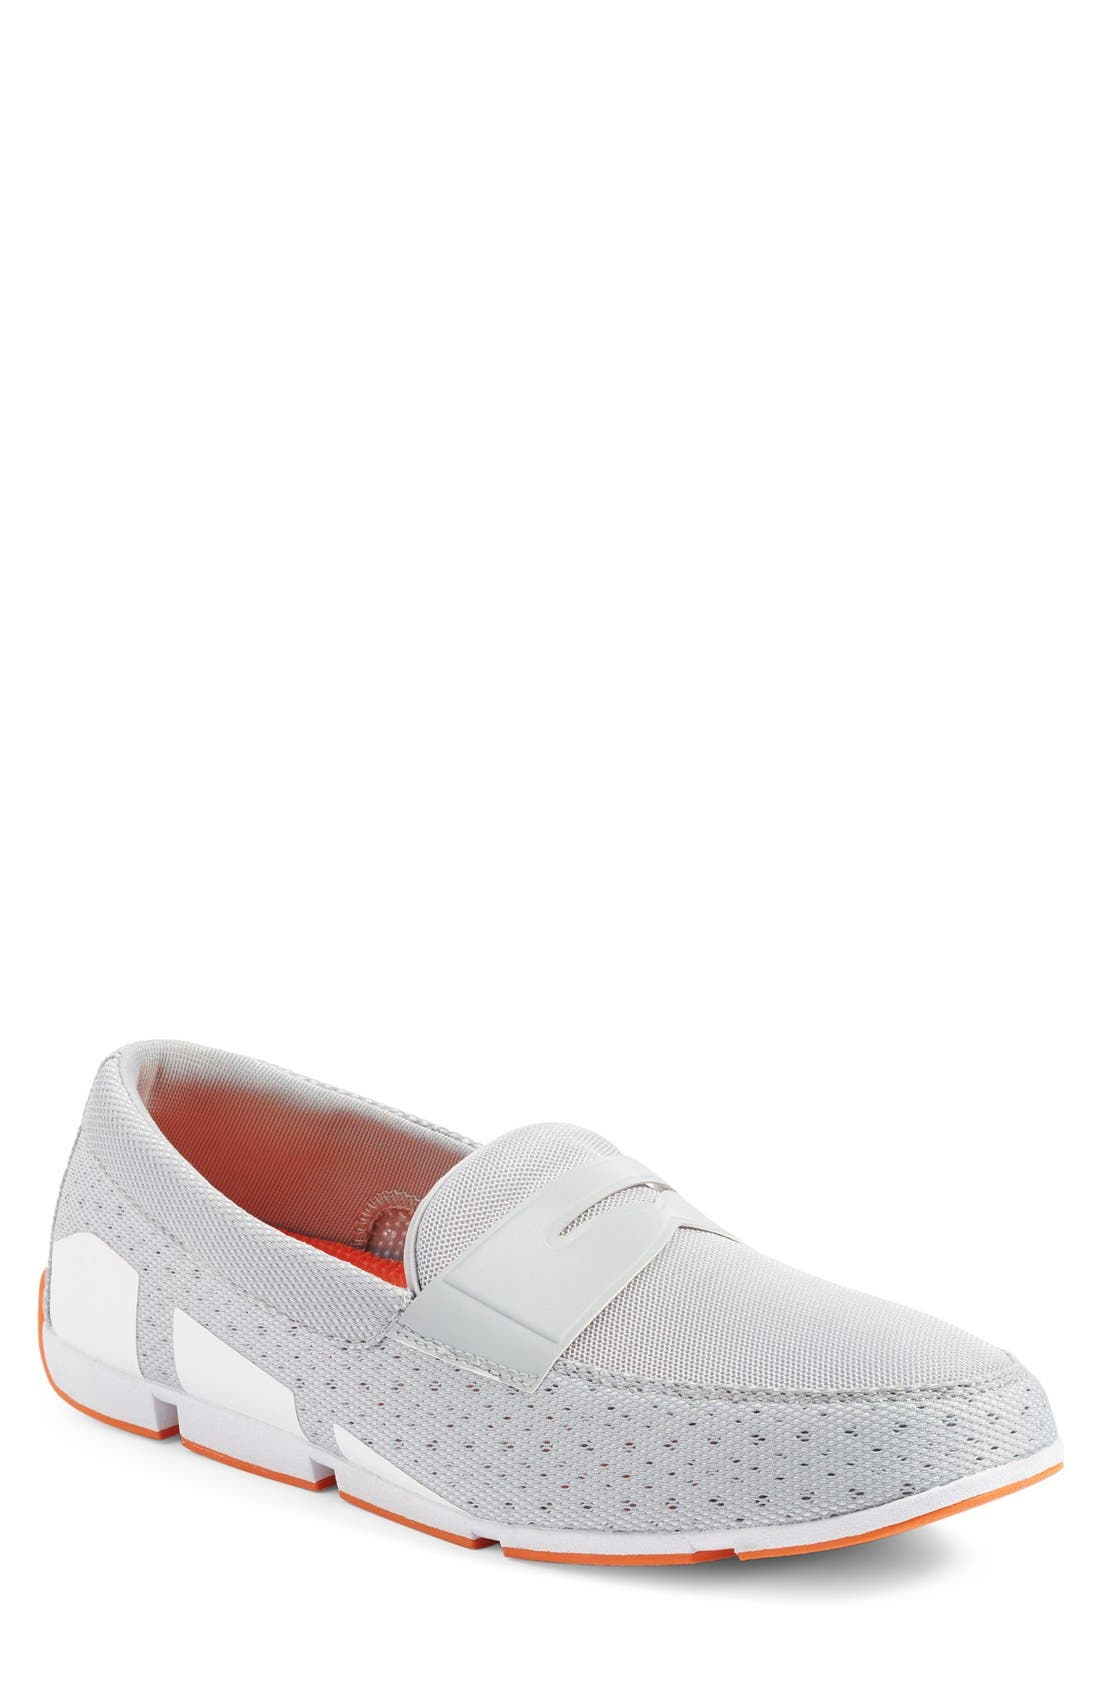 Breeze Penny Loafer,                             Main thumbnail 2, color,